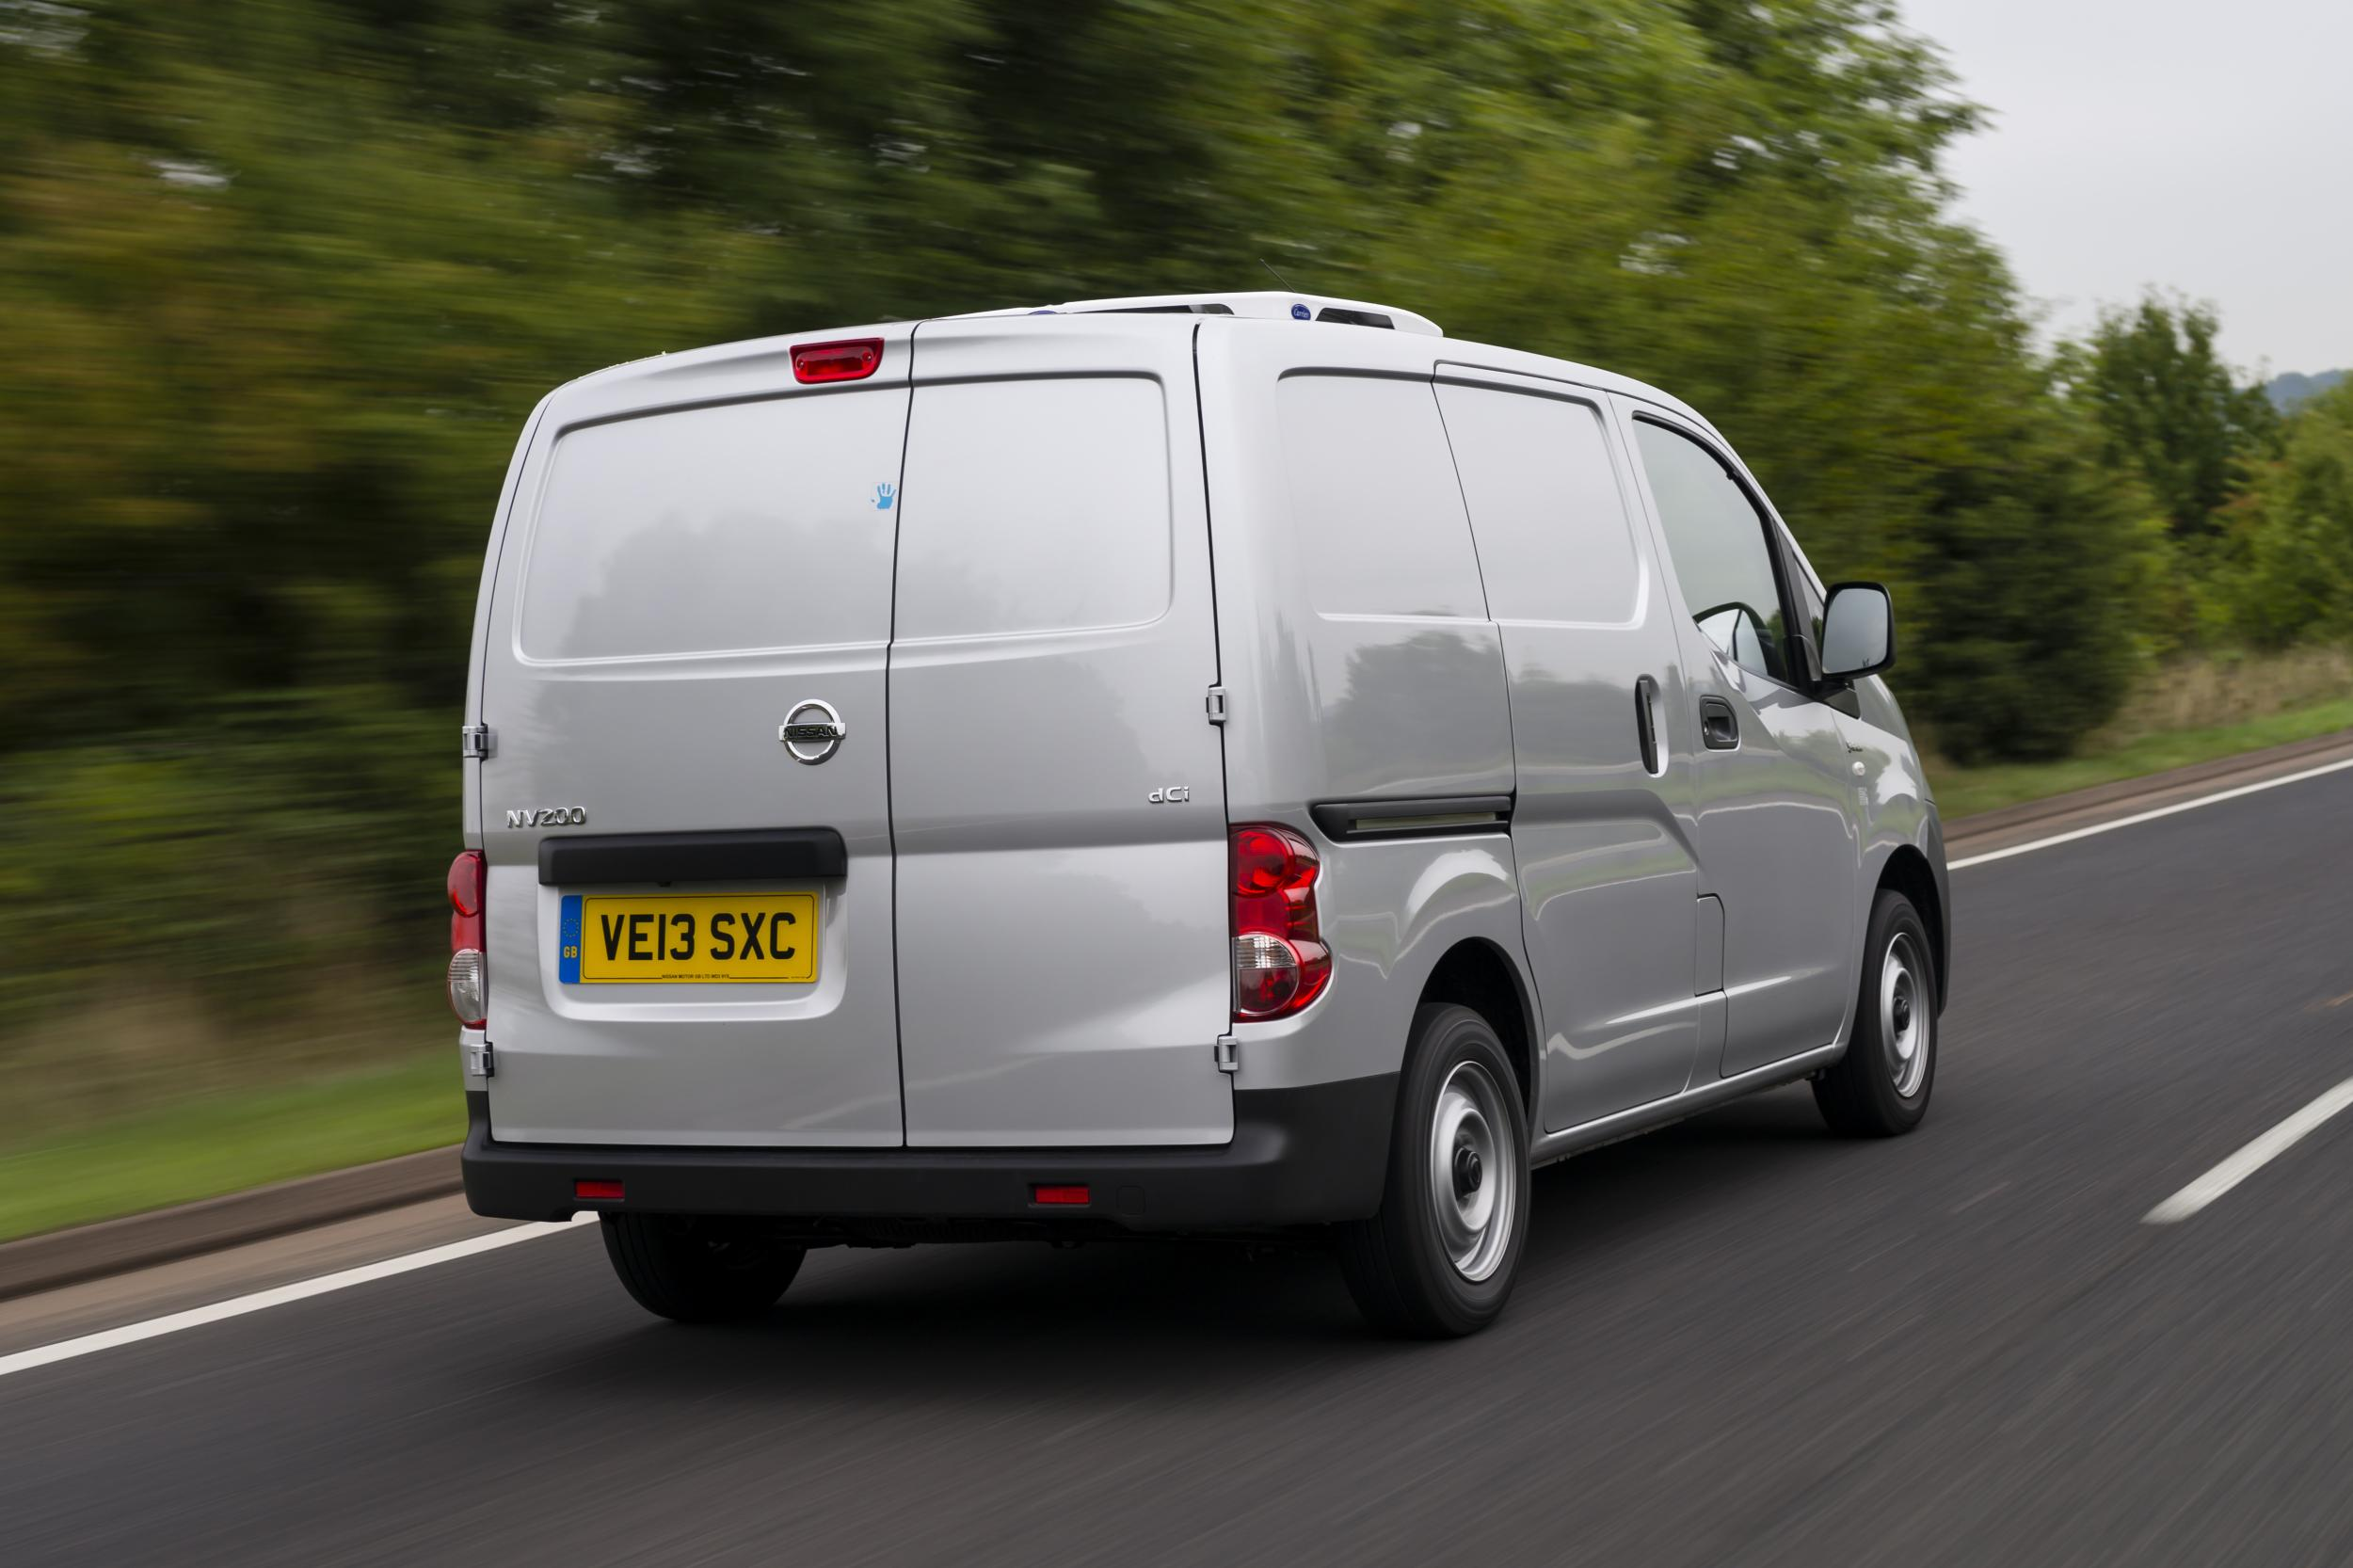 Vw Crafter 2018 >> Nissan NV200 - CommercialVehicle.com